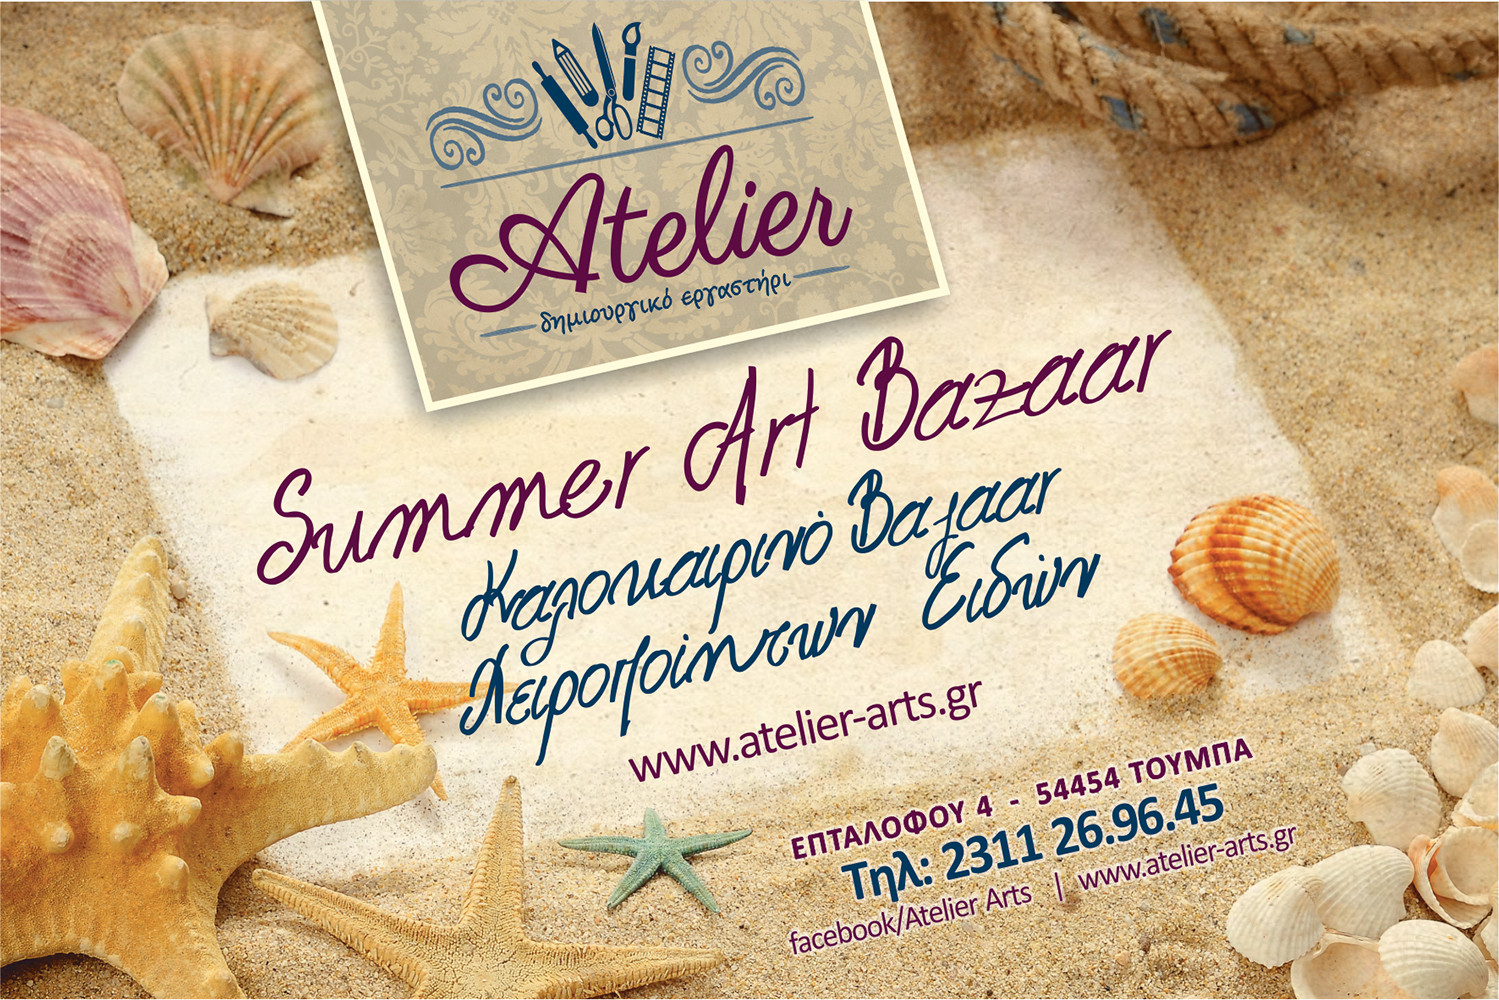 Summer Art Bazaar 2020